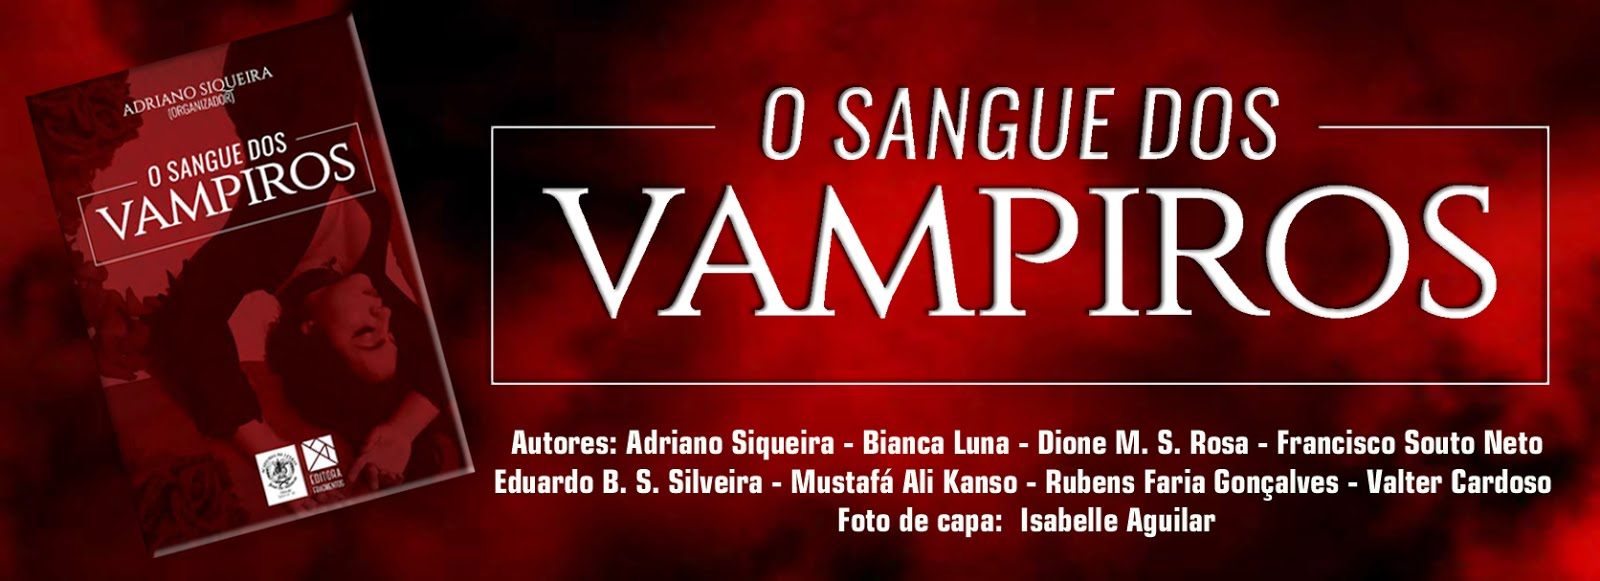 O Sangue dos Vampiros - clique aqui